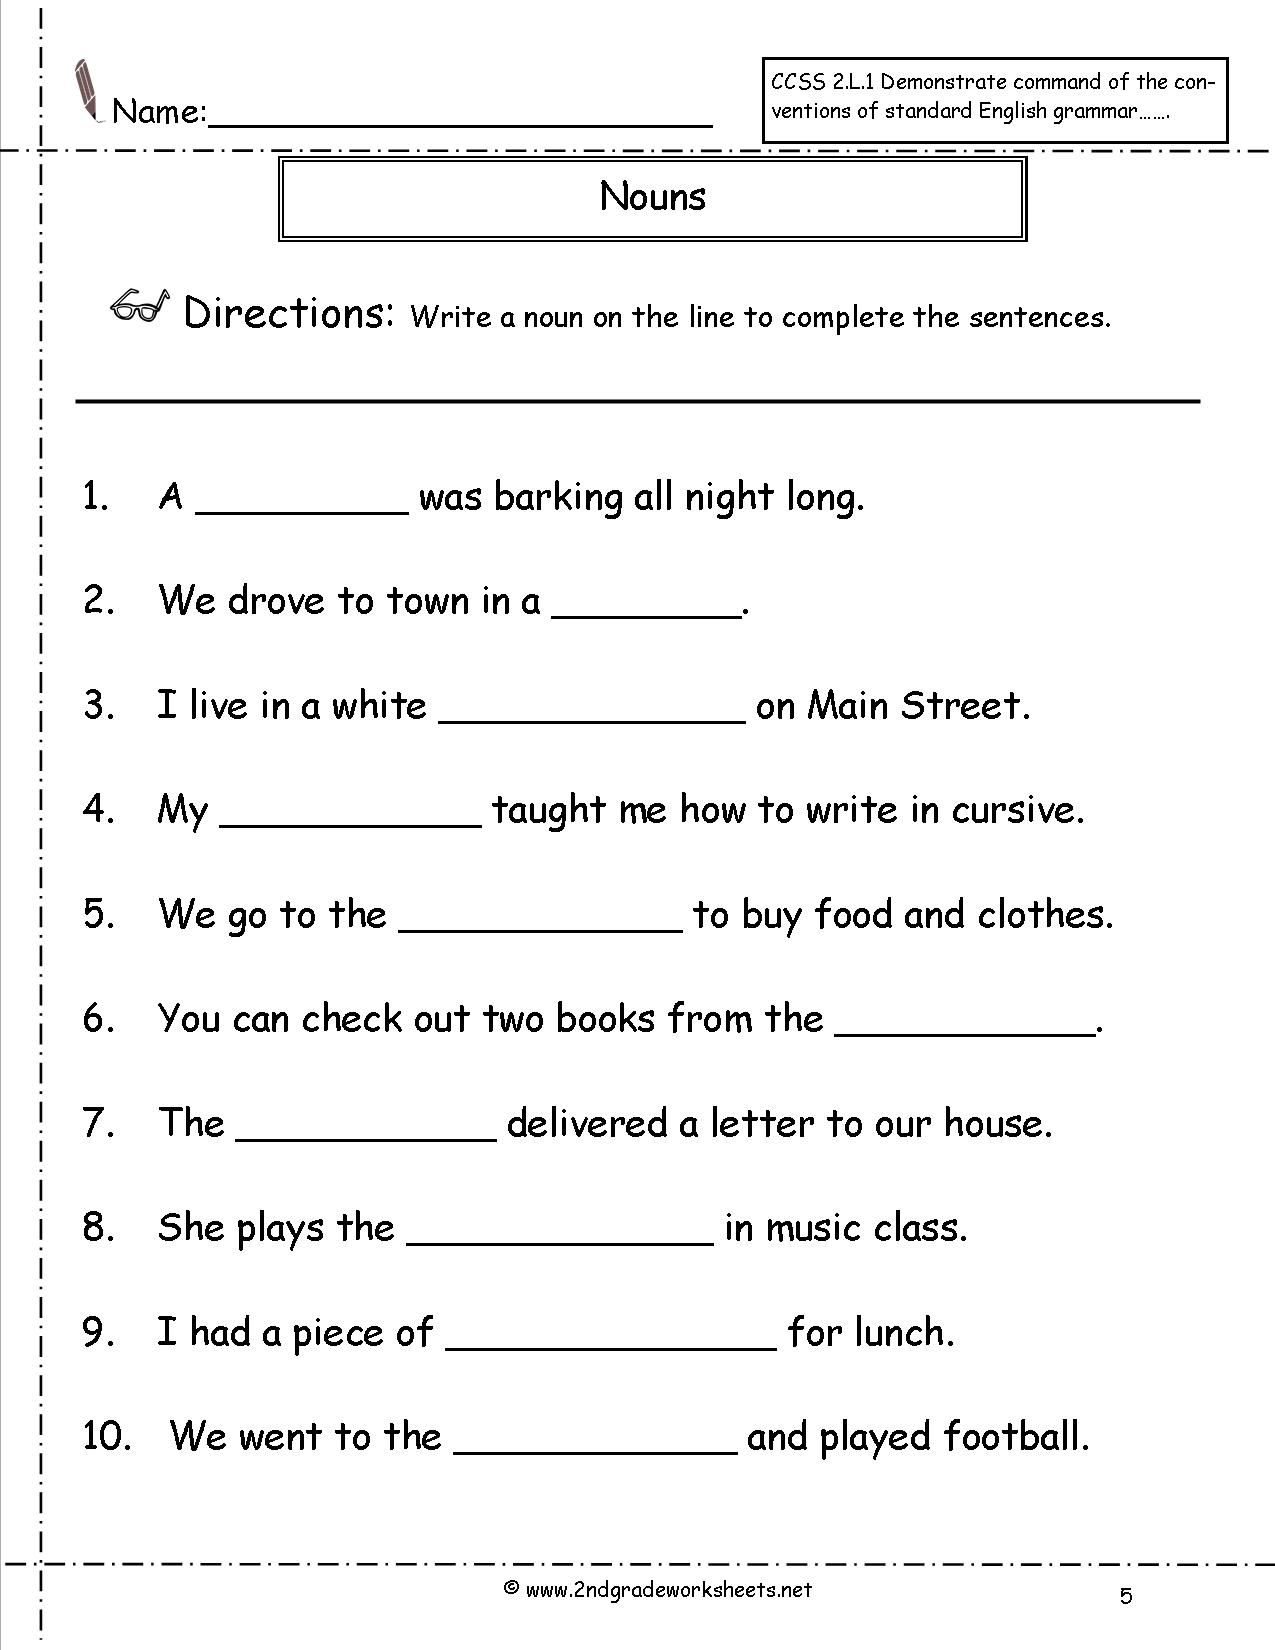 12 Best Worksheets Punctuation Comma Images On Best